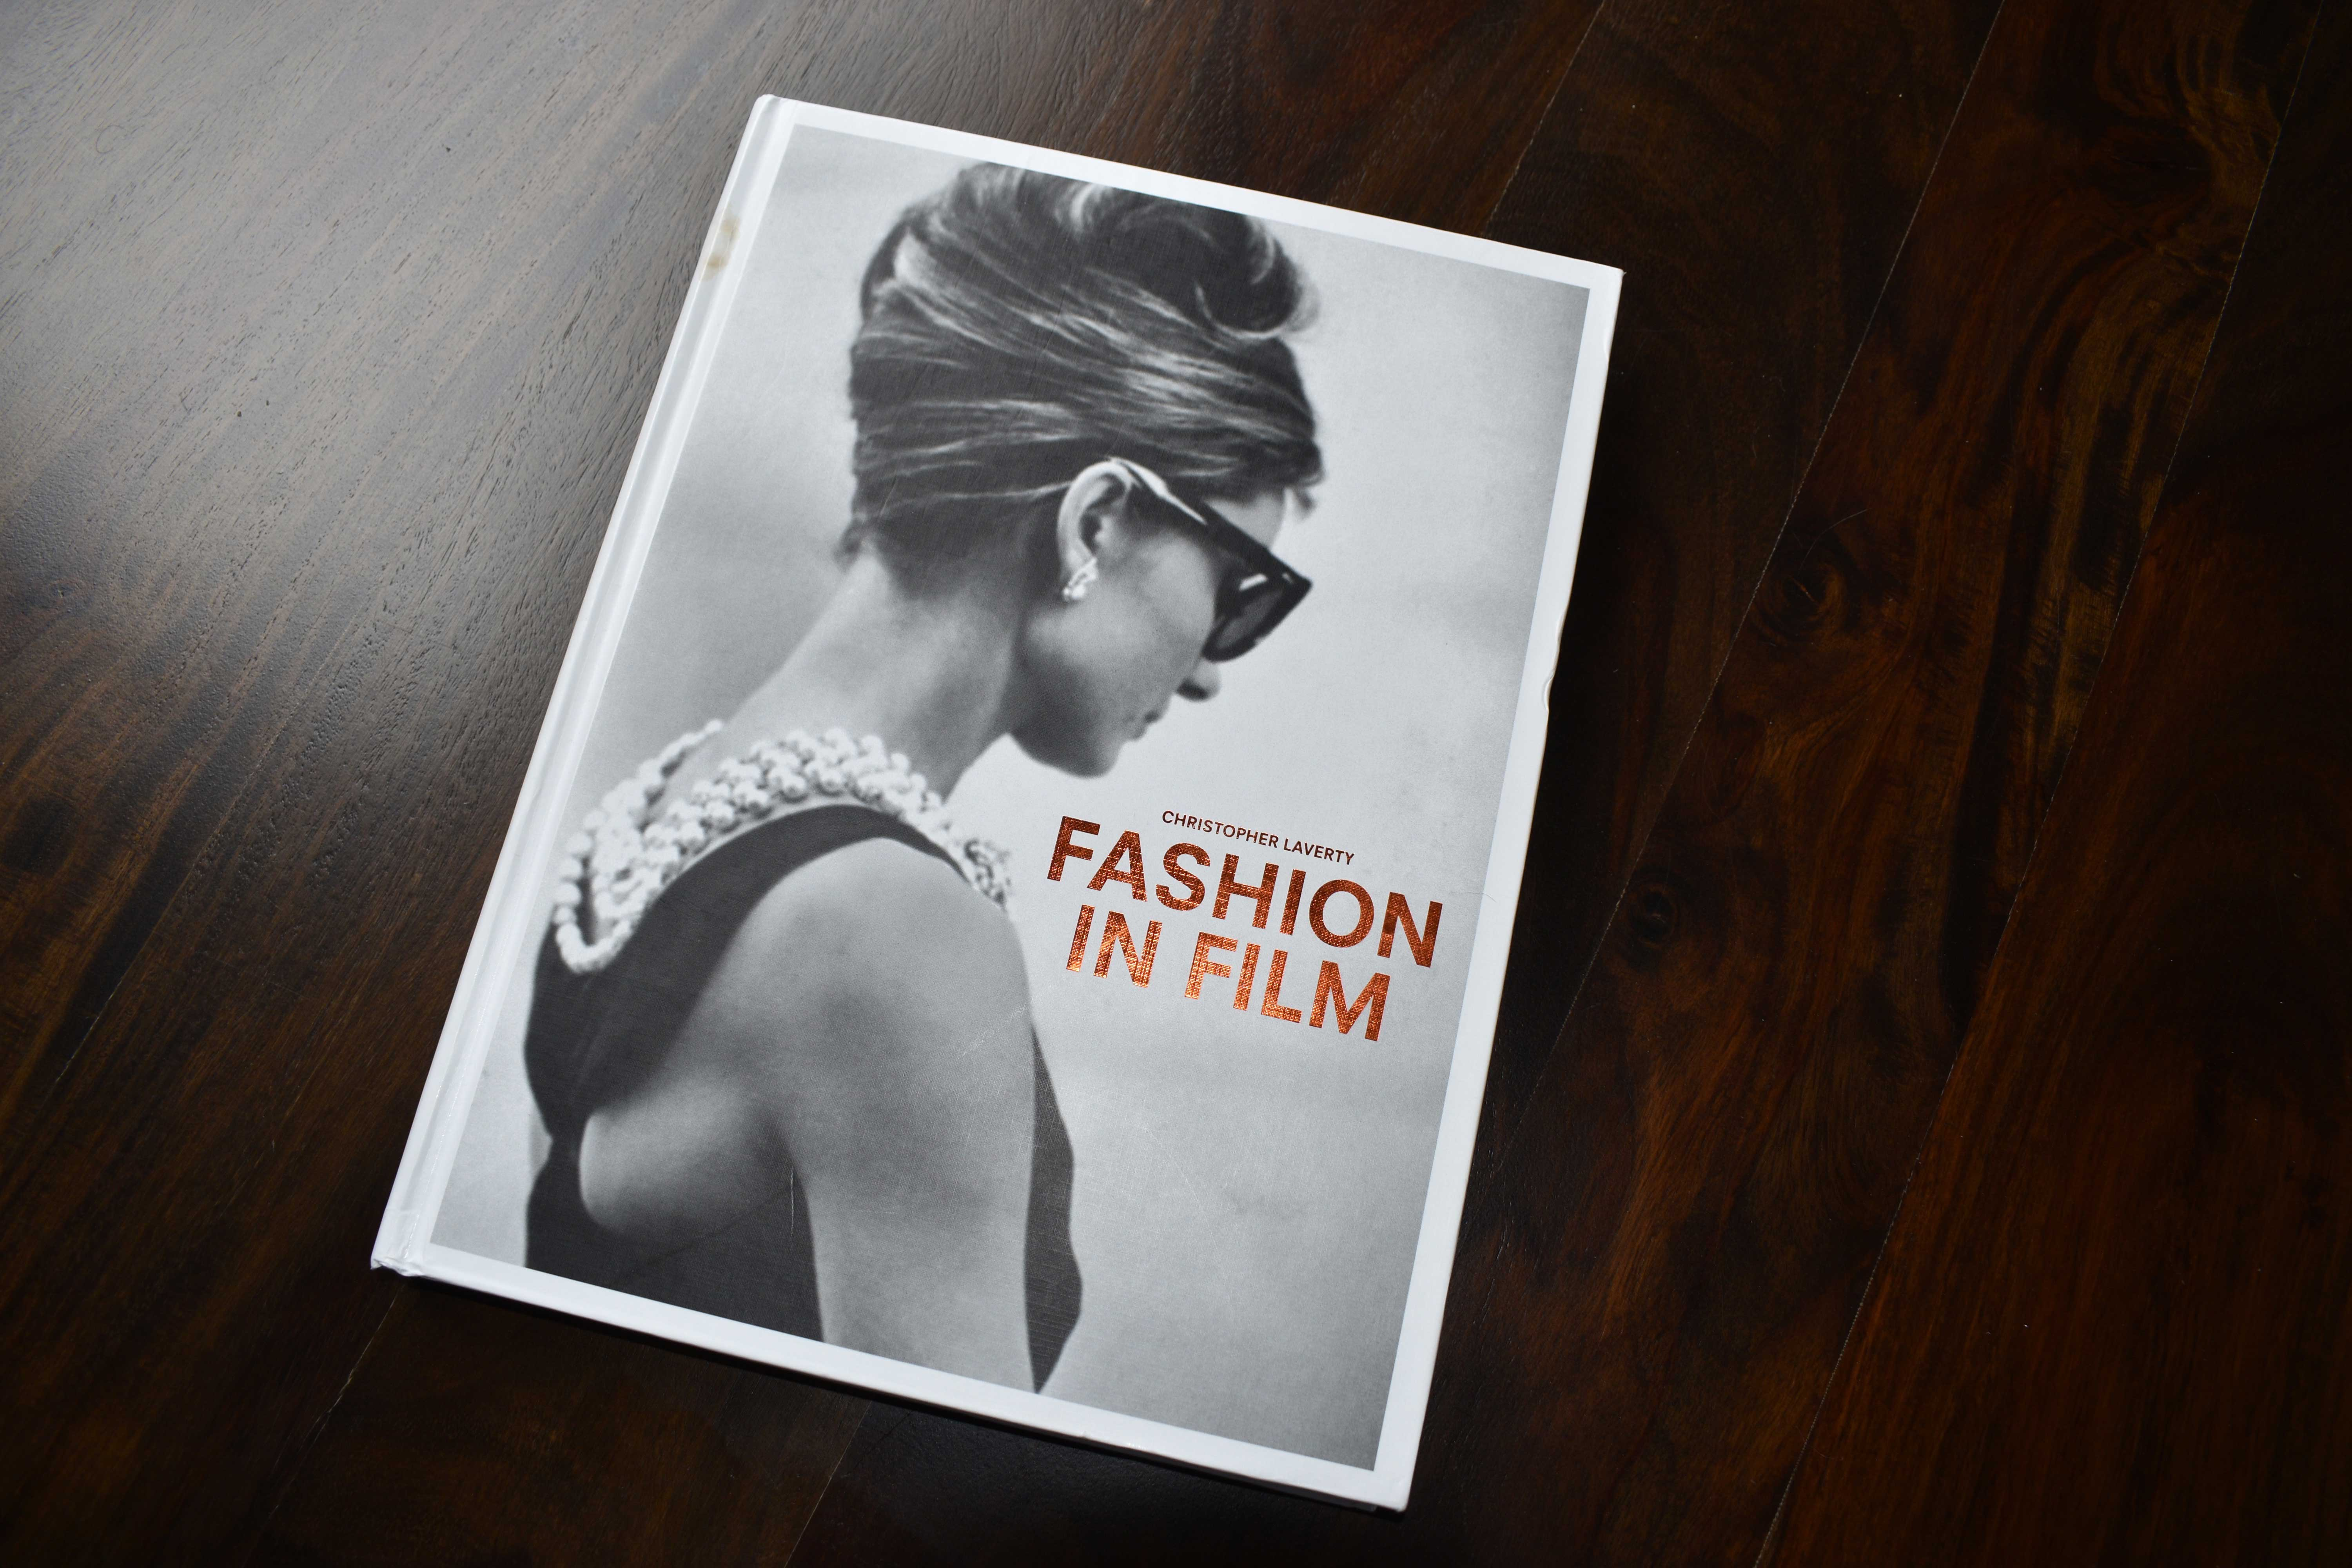 clothes on film book